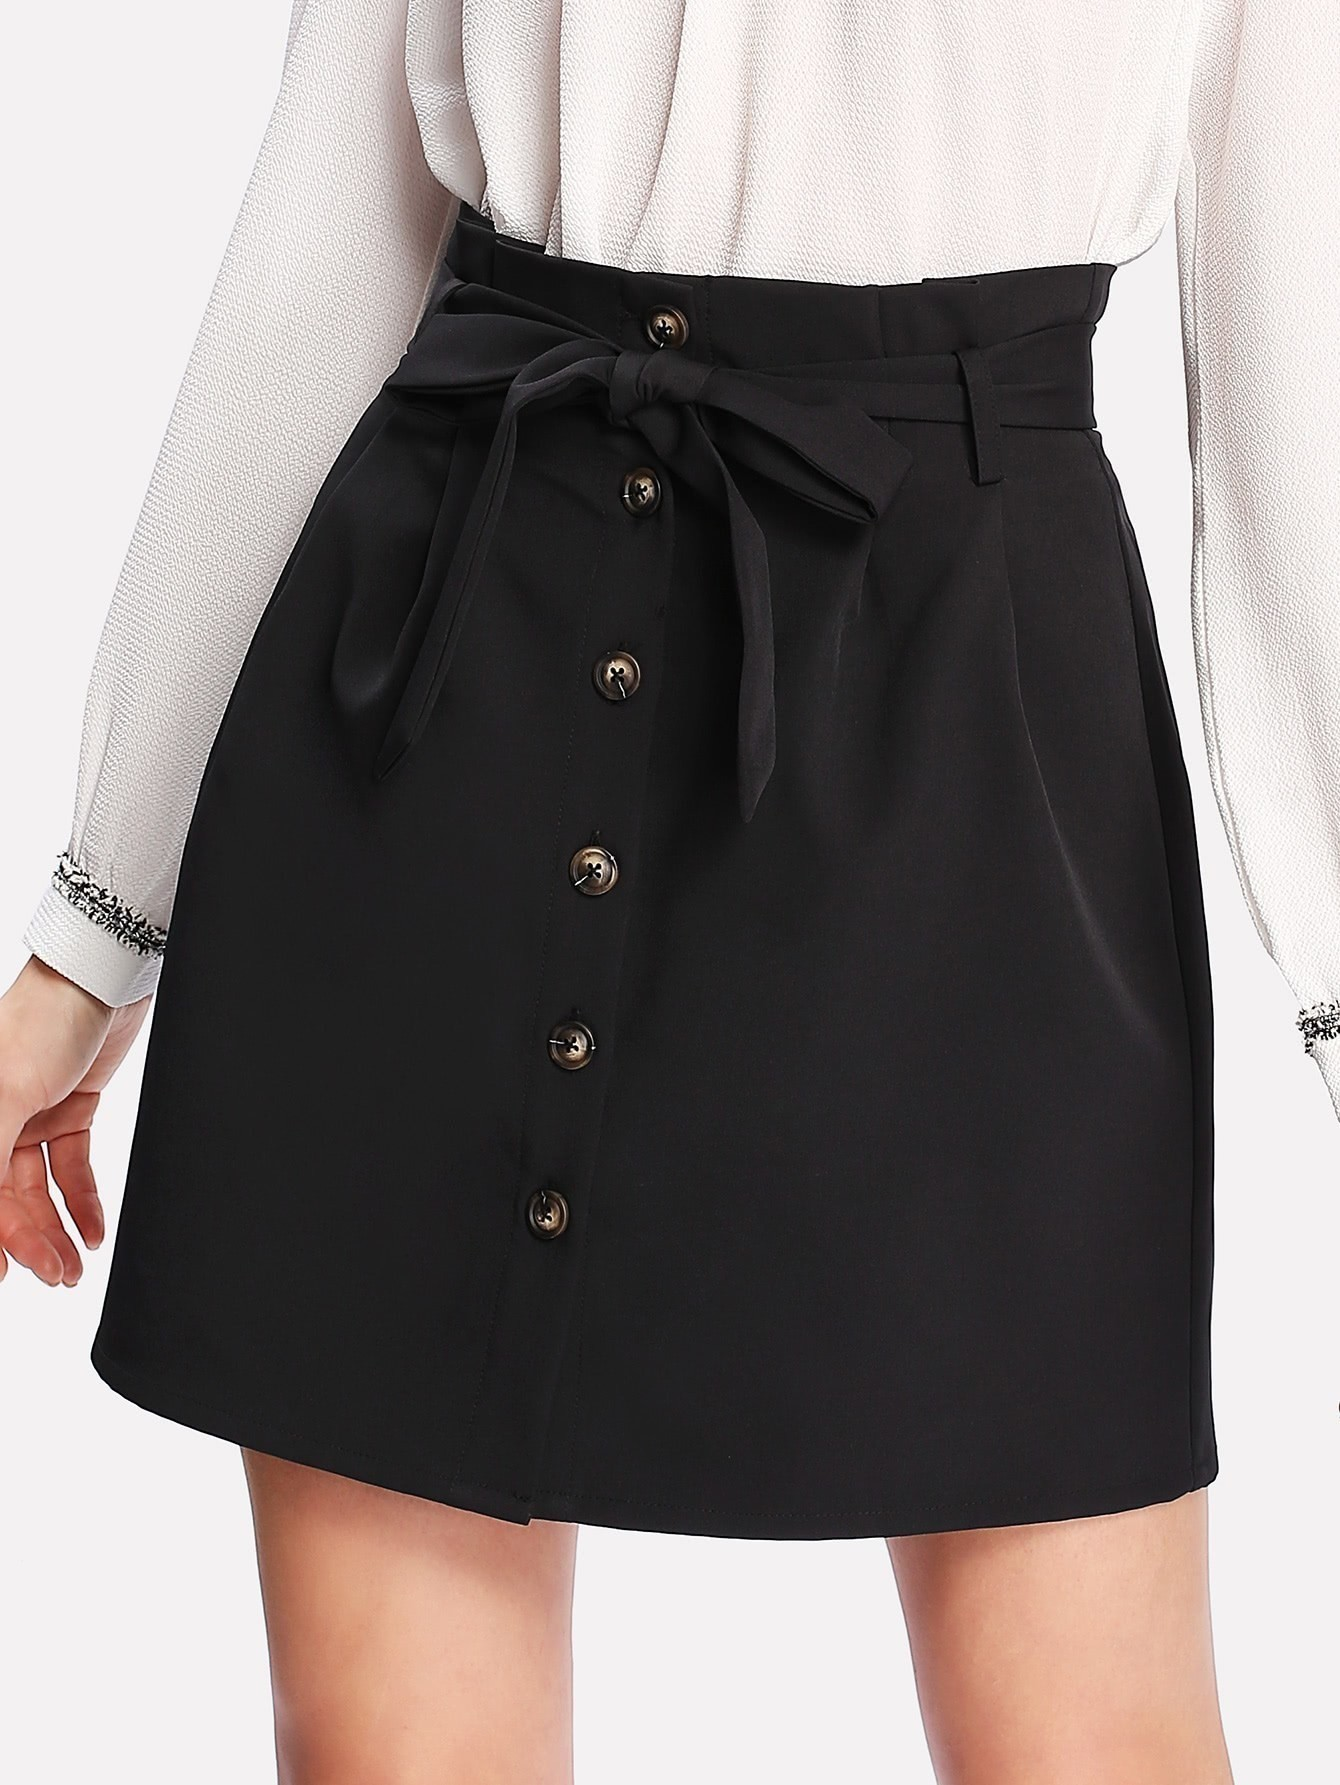 Self Belt Button Up Skirt